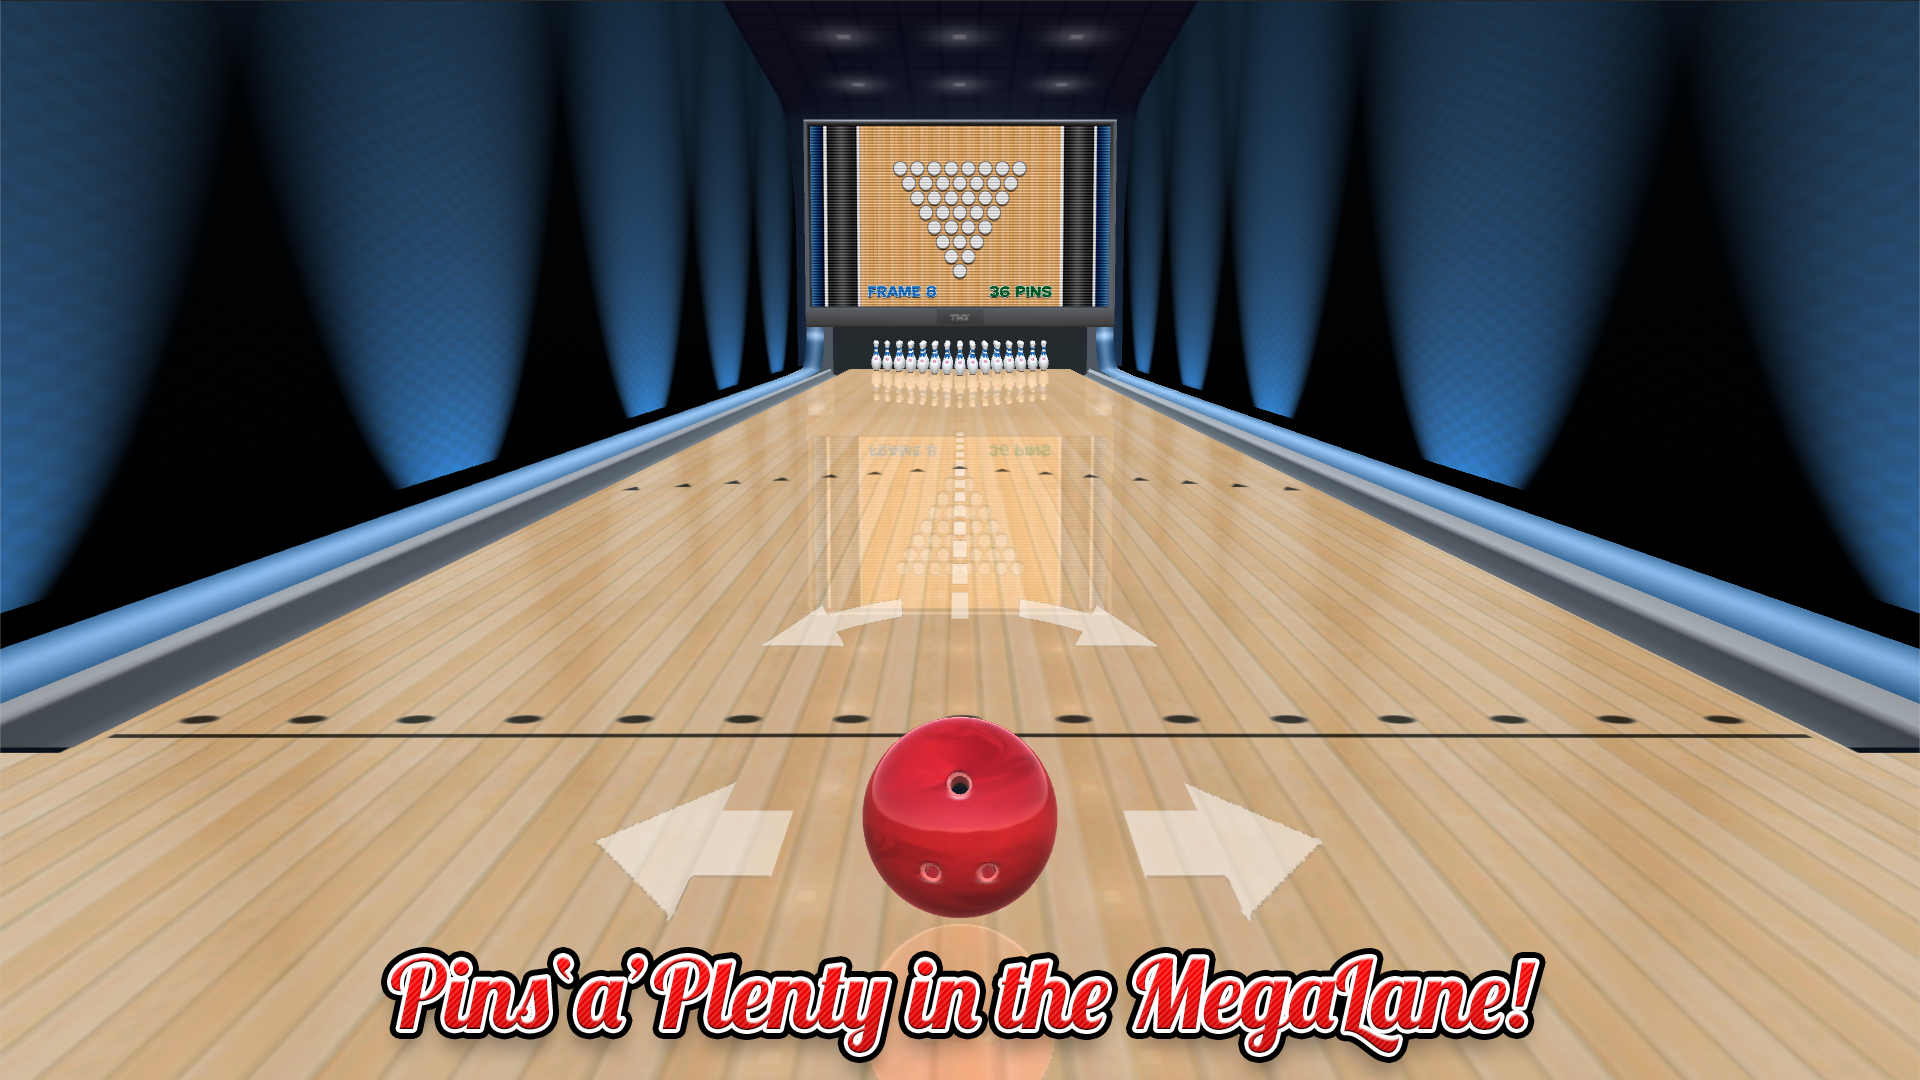 Strike! Ten Pin Bowling screenshot 15